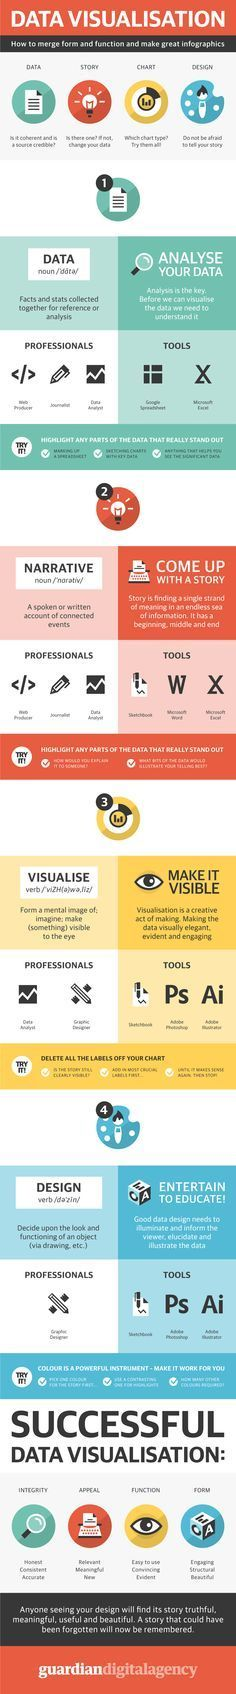 Data Visualization: How To Merge Form & Function And Make Great #Infographics